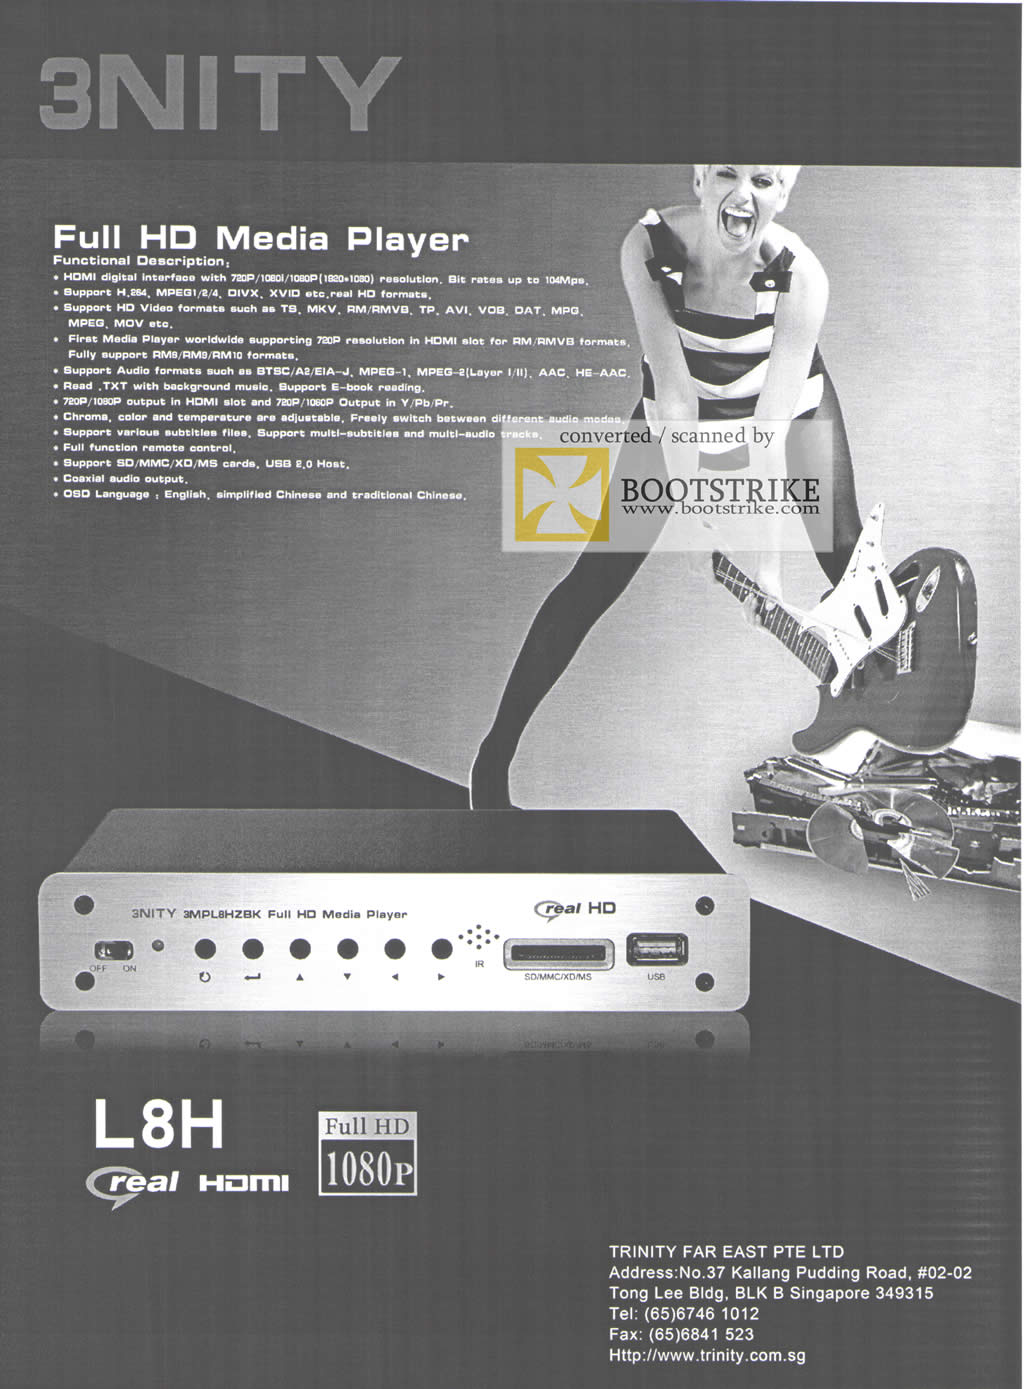 Comex 2009 price list image brochure of Trinity 3nity Media Player L8H Real HD